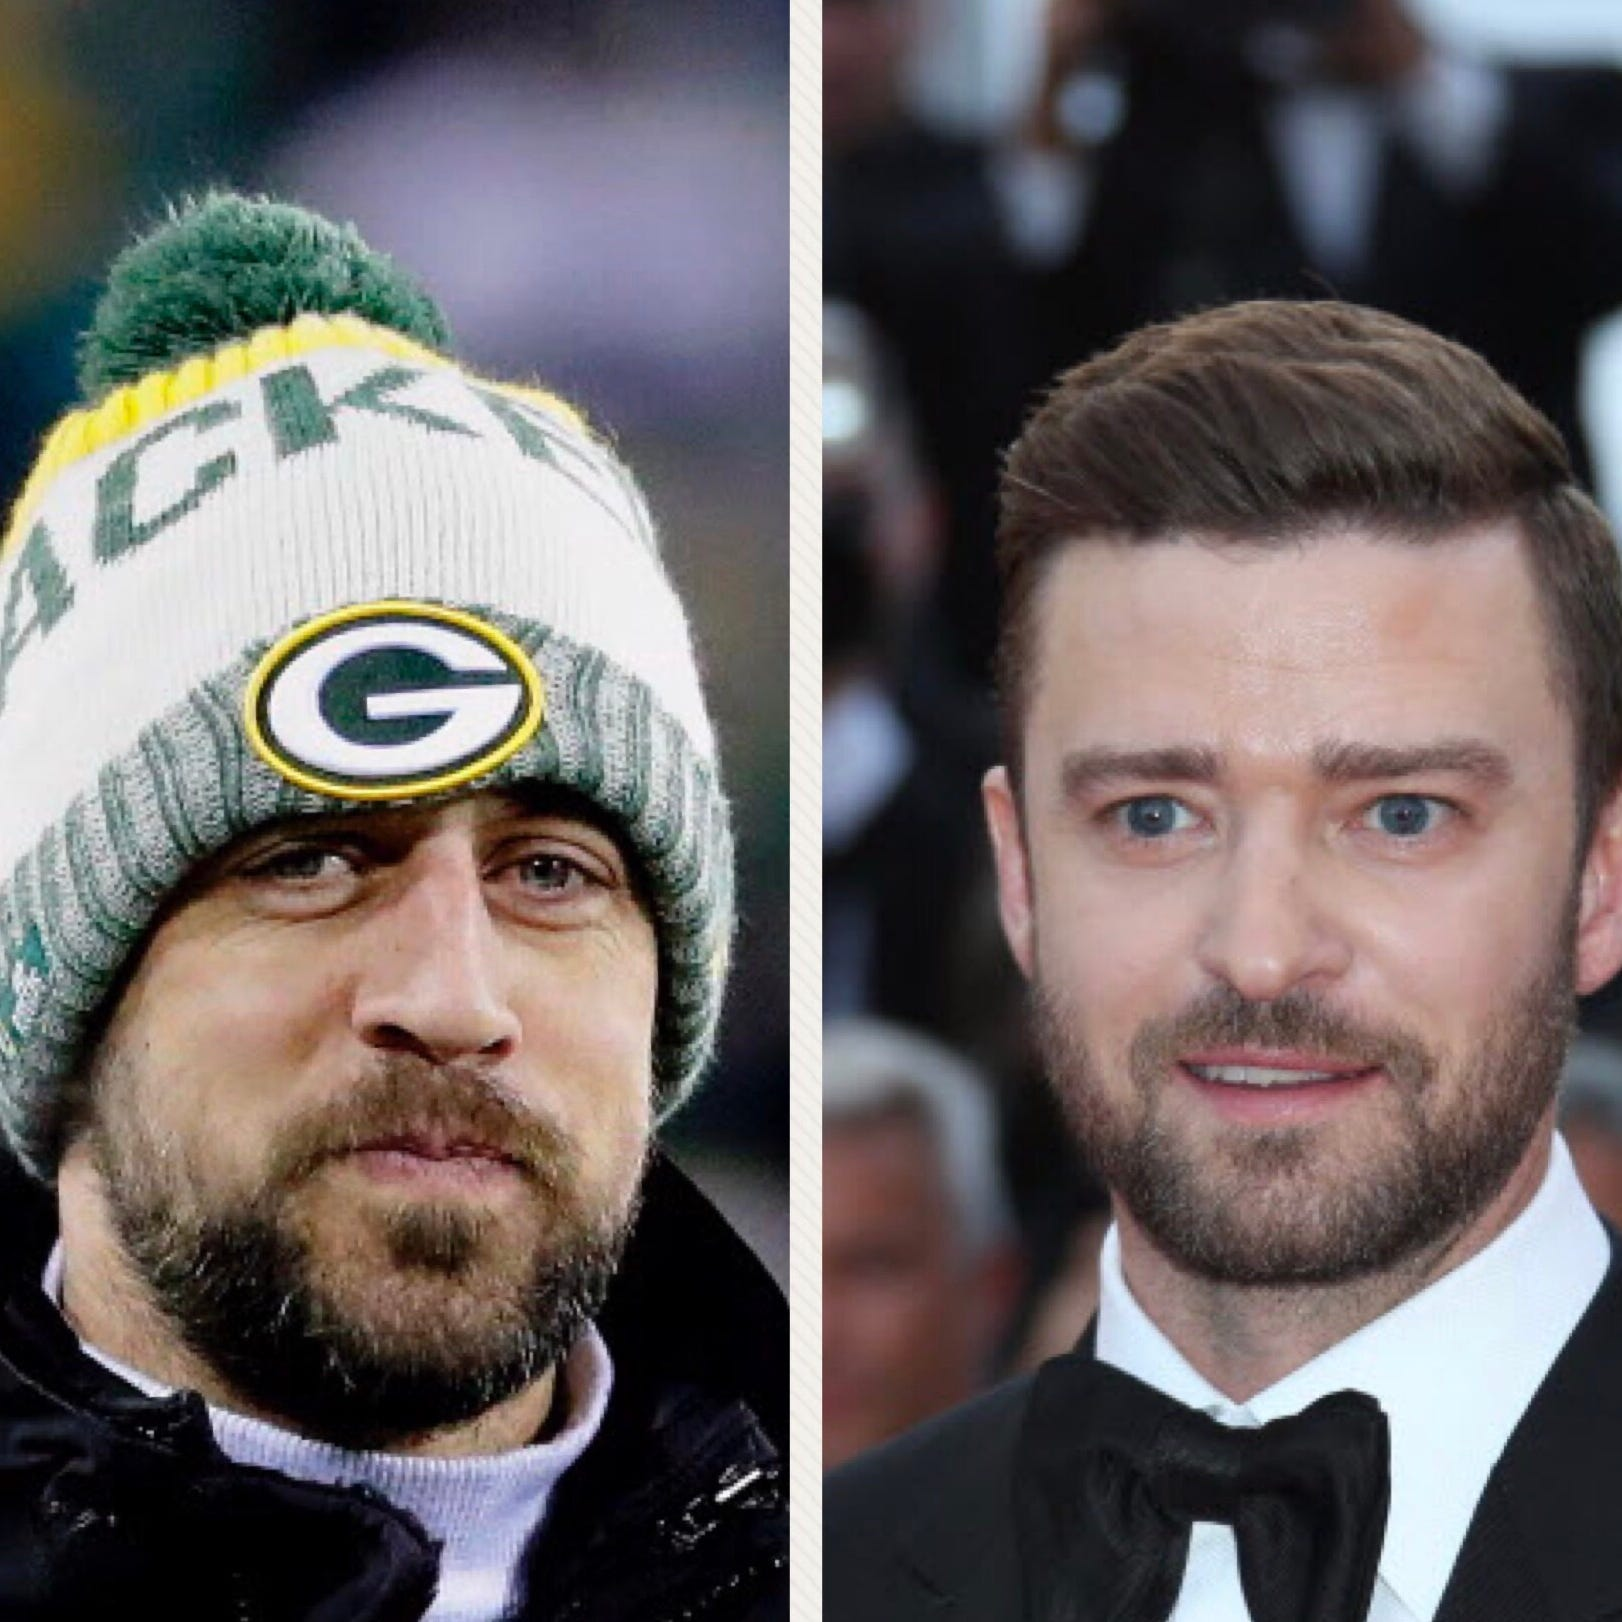 So will Aaron Rodgers make a cameo during buddy Justin Timberlake's Milwaukee concert?